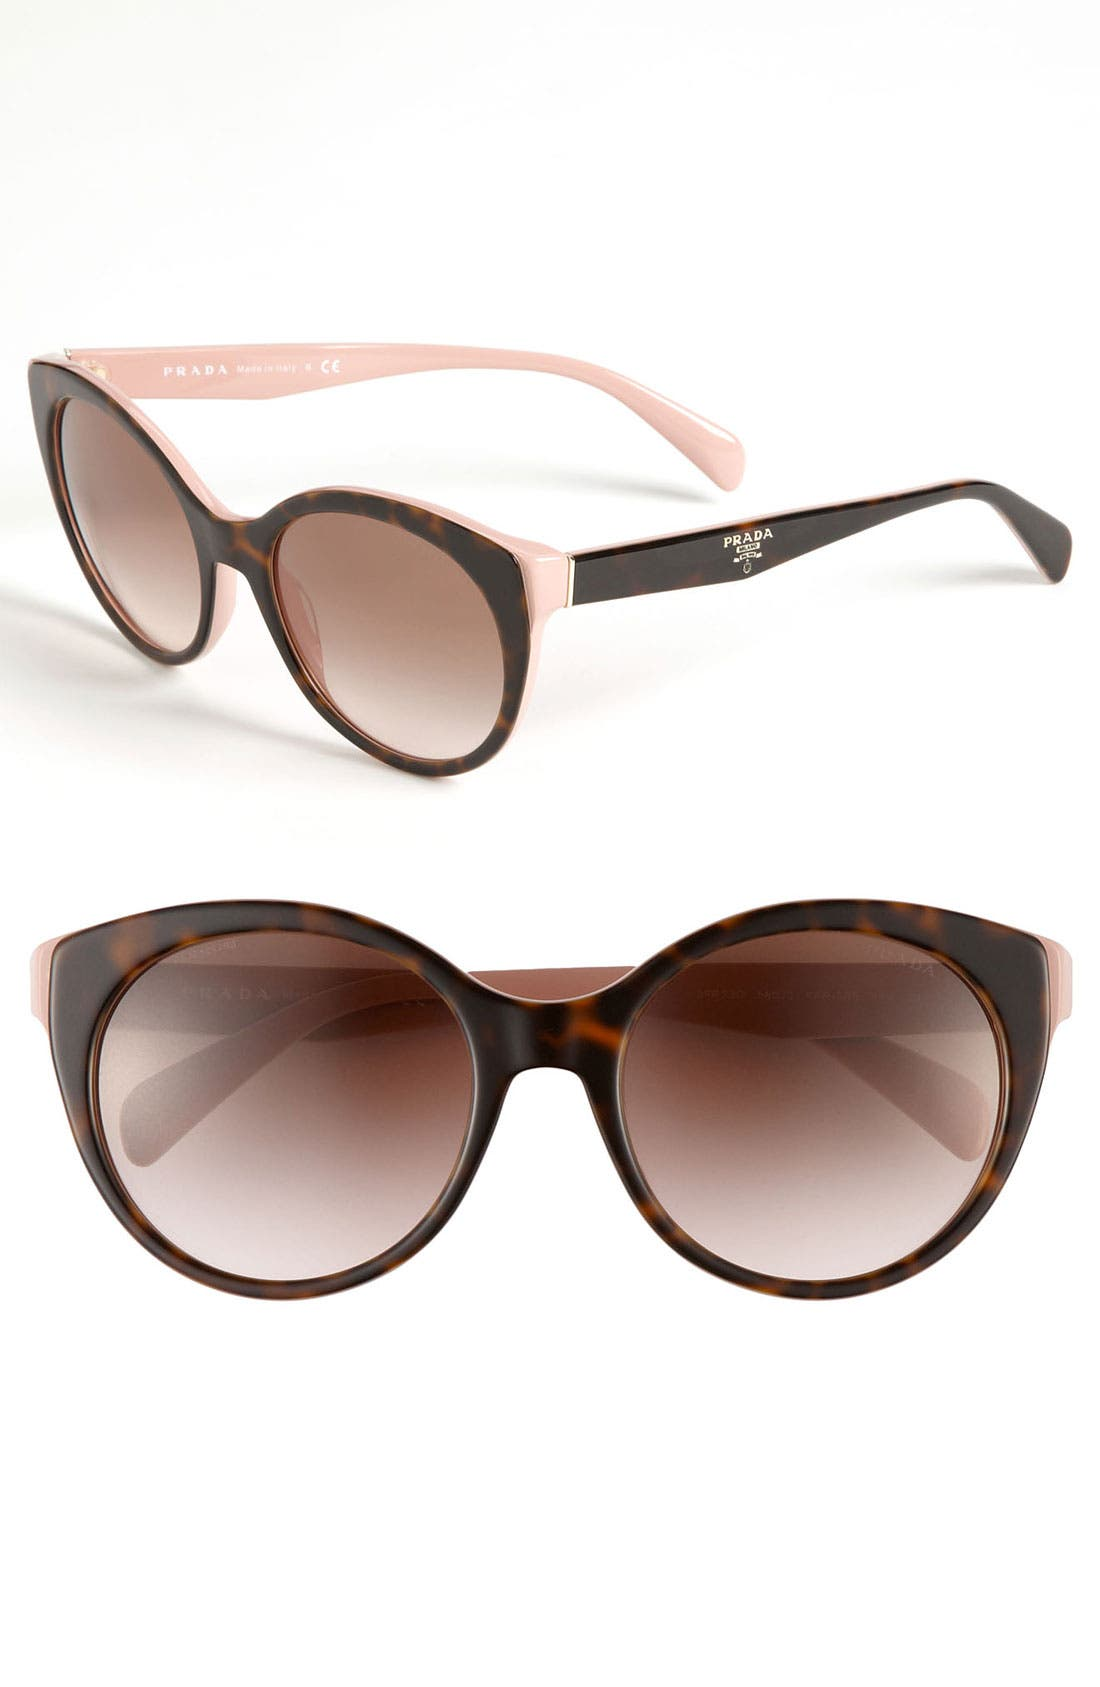 Alternate Image 1 Selected - Prada 56mm Cat Eye Sunglasses